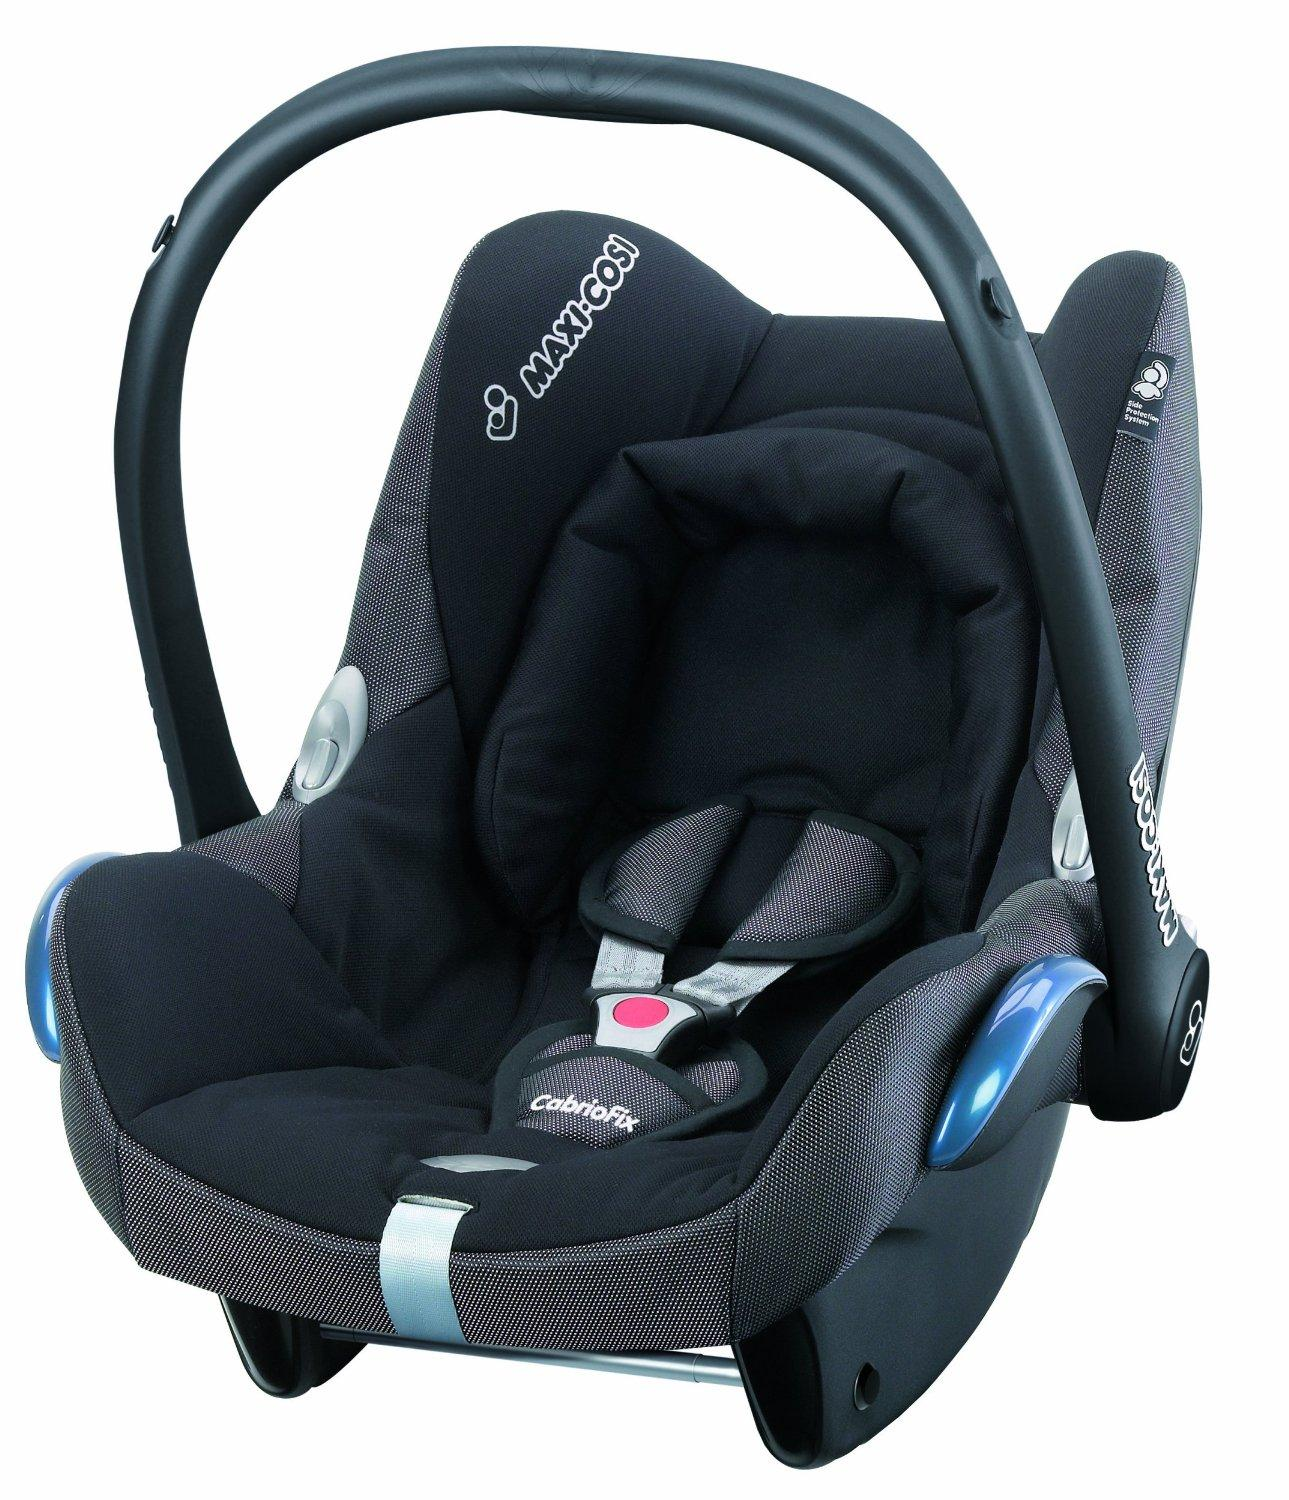 Maxi Cosi Cabriofix Group  Infant Carrier Car Seat